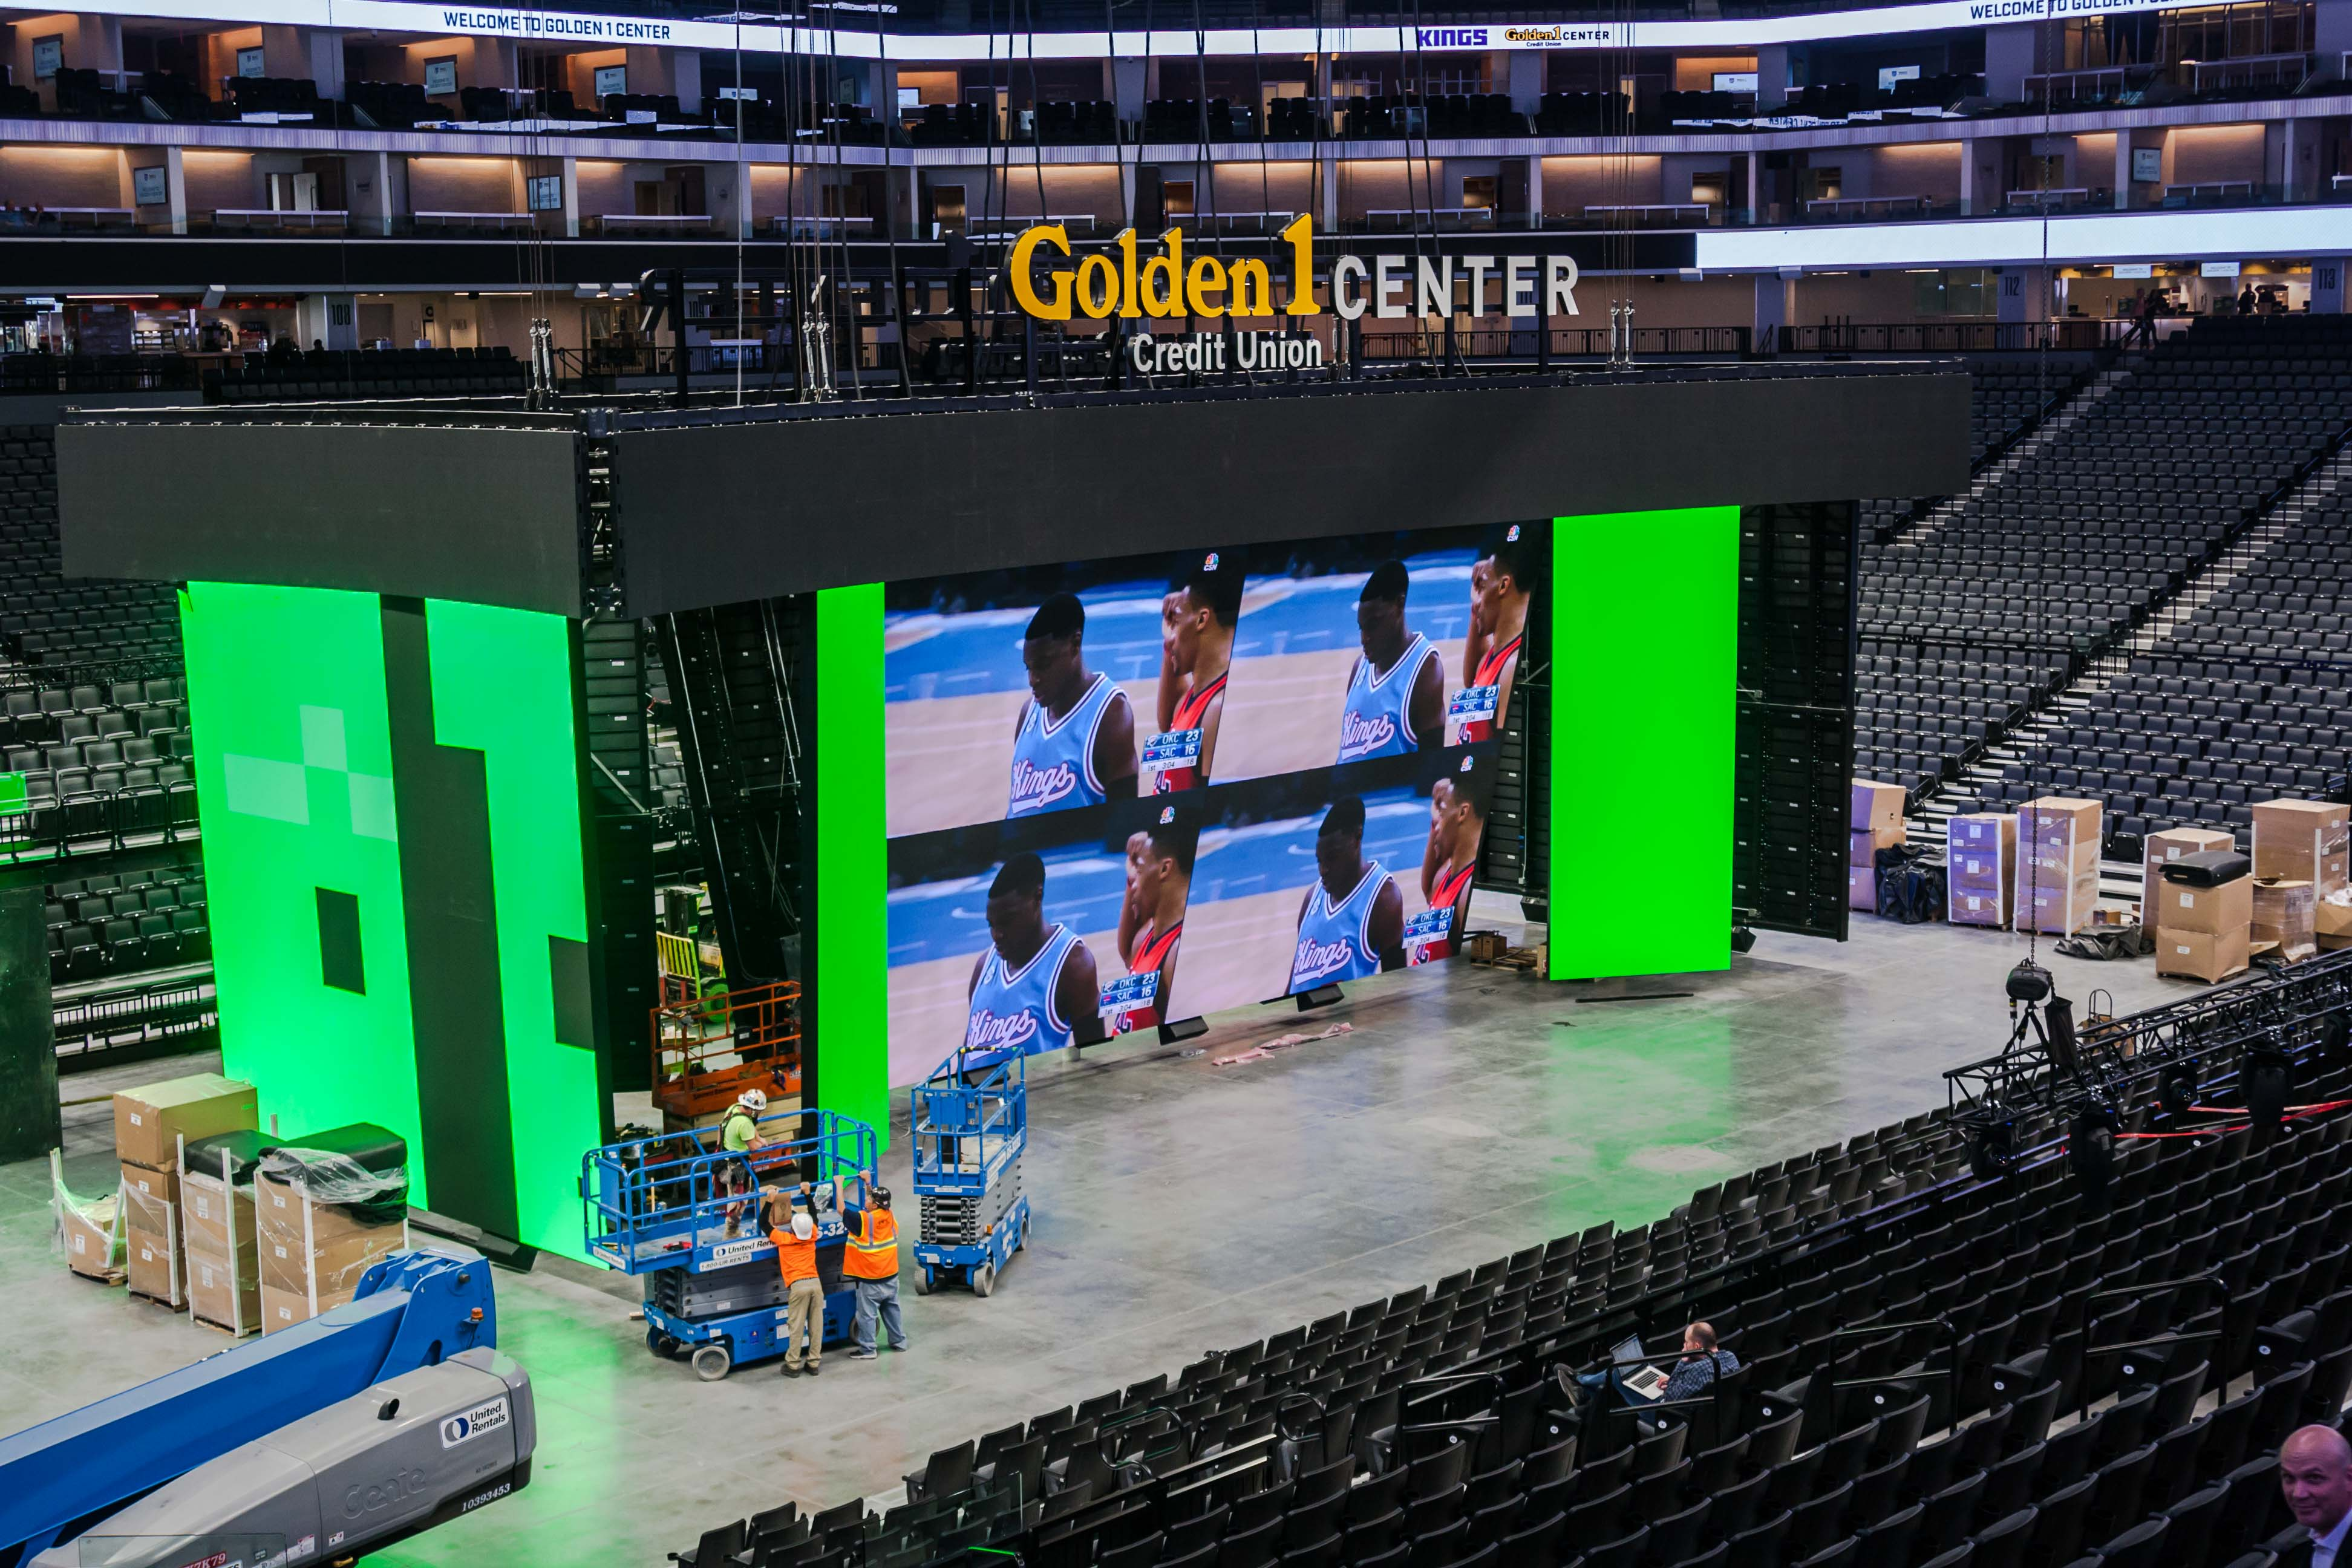 The Sacramento Kings have installed a 4K scoreboard in its new arena, The Golden 1 Center,